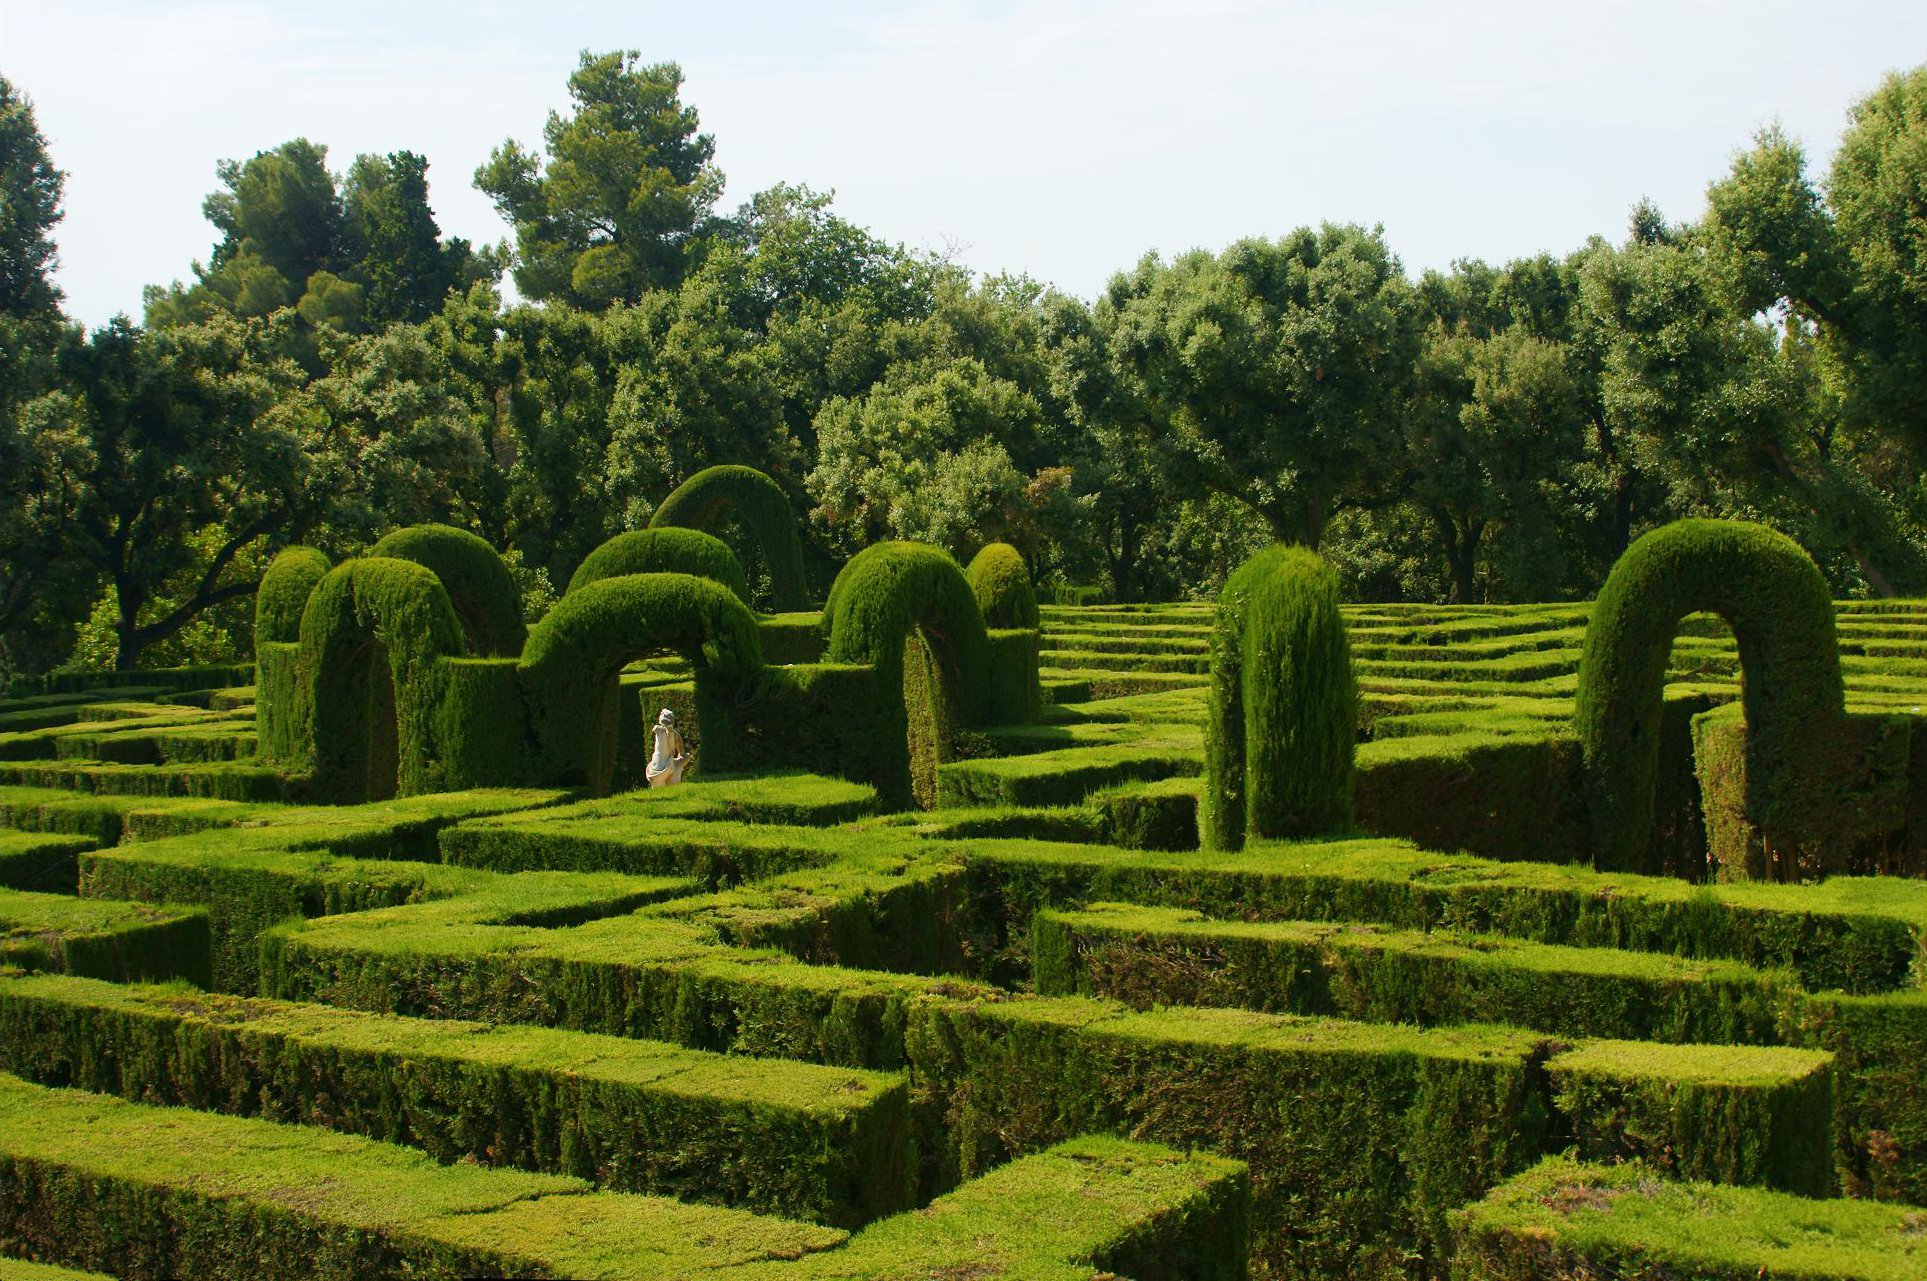 The Labyrinth Park